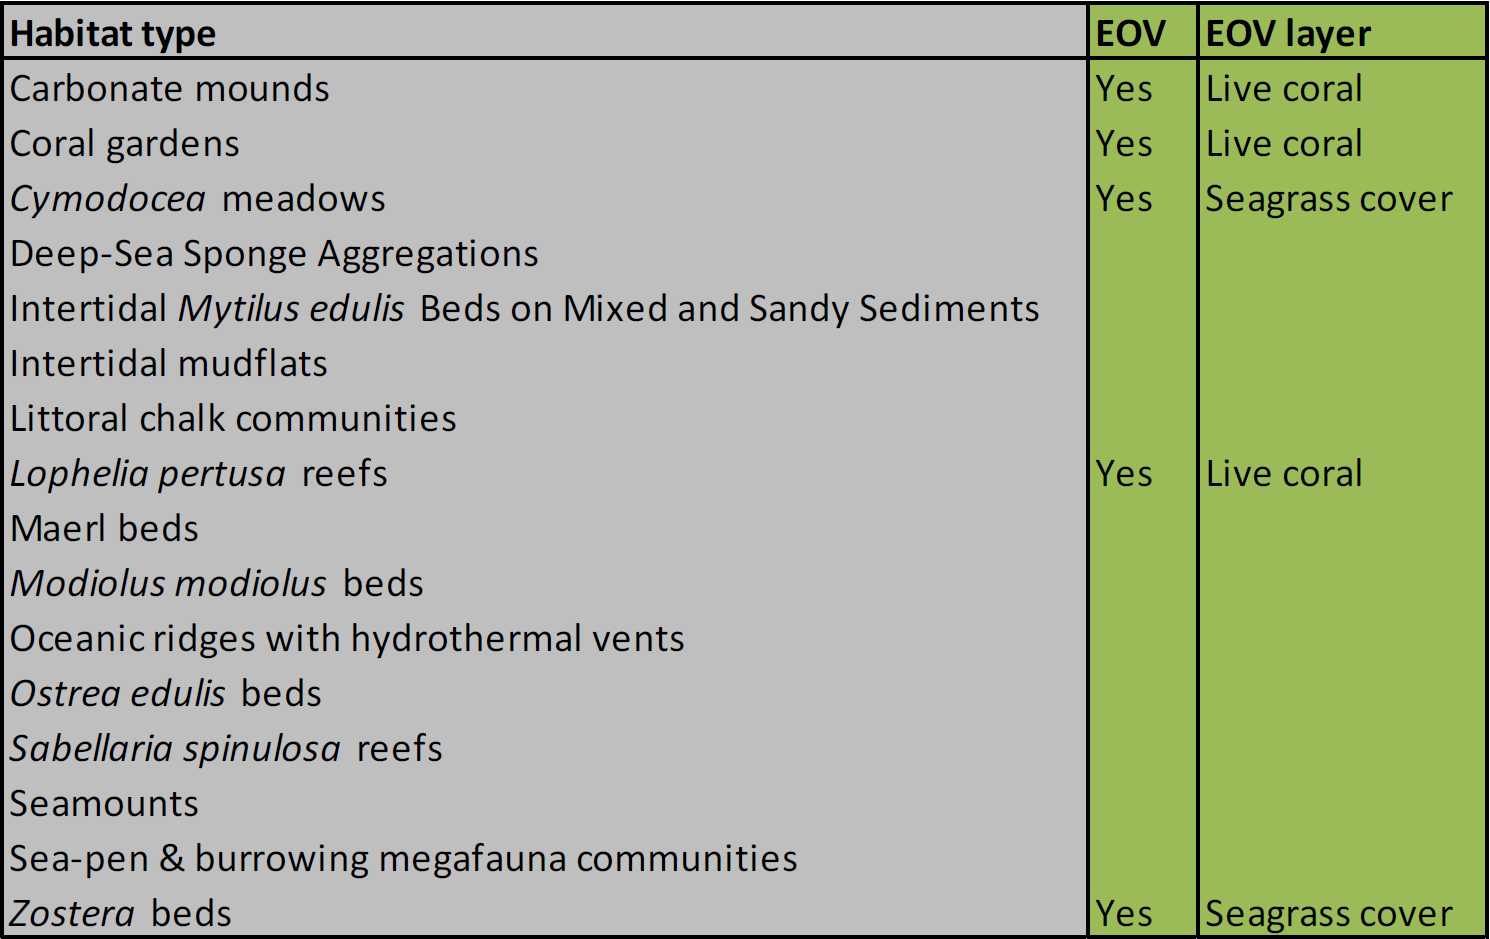 Table 5: Habitats selected from the OSPAR List for inclusion in the EOV layers.